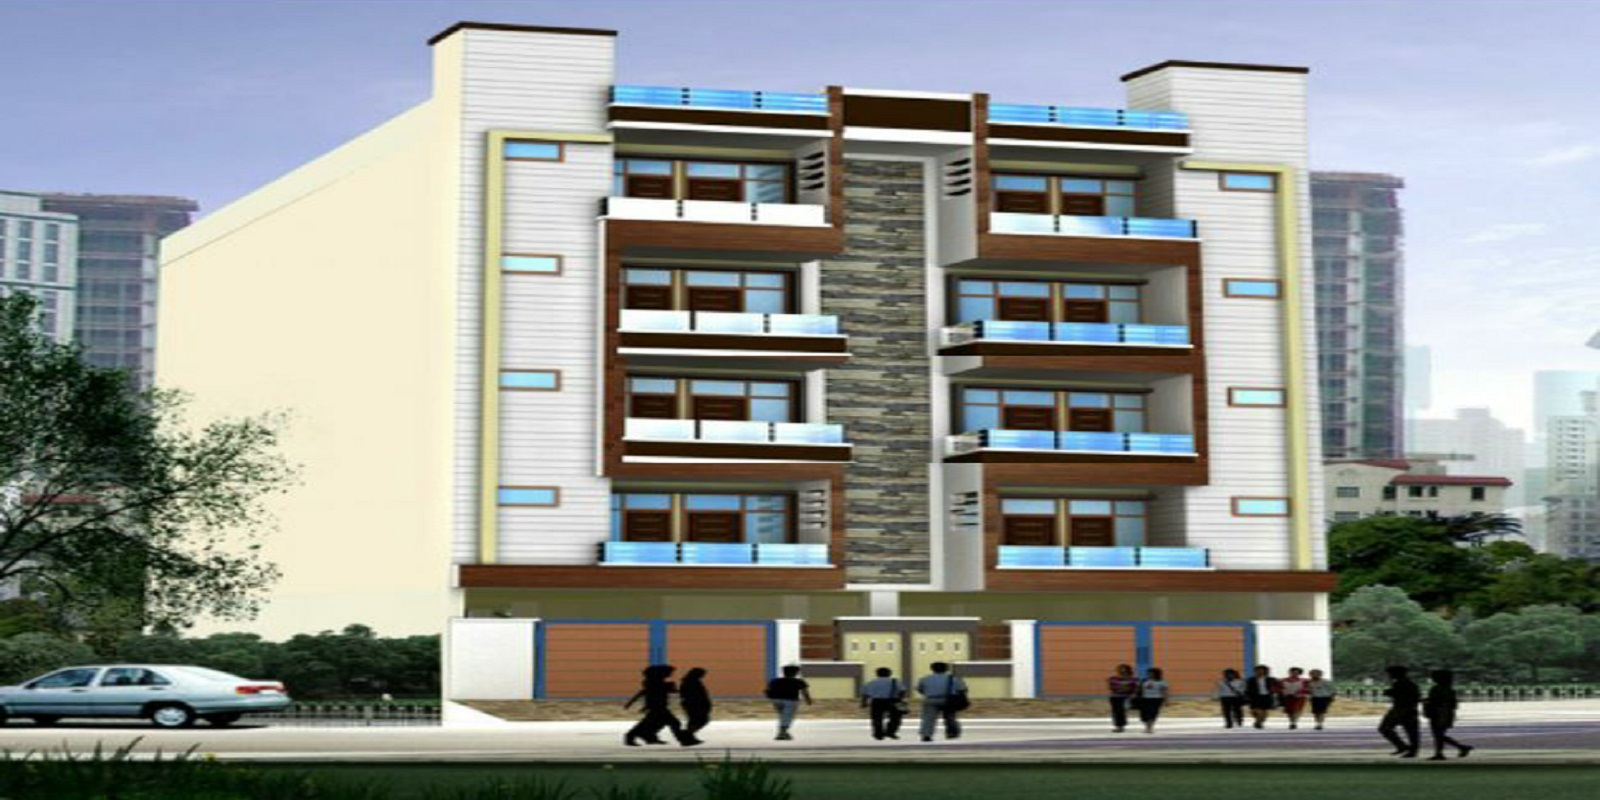 blossom heights project project large image1